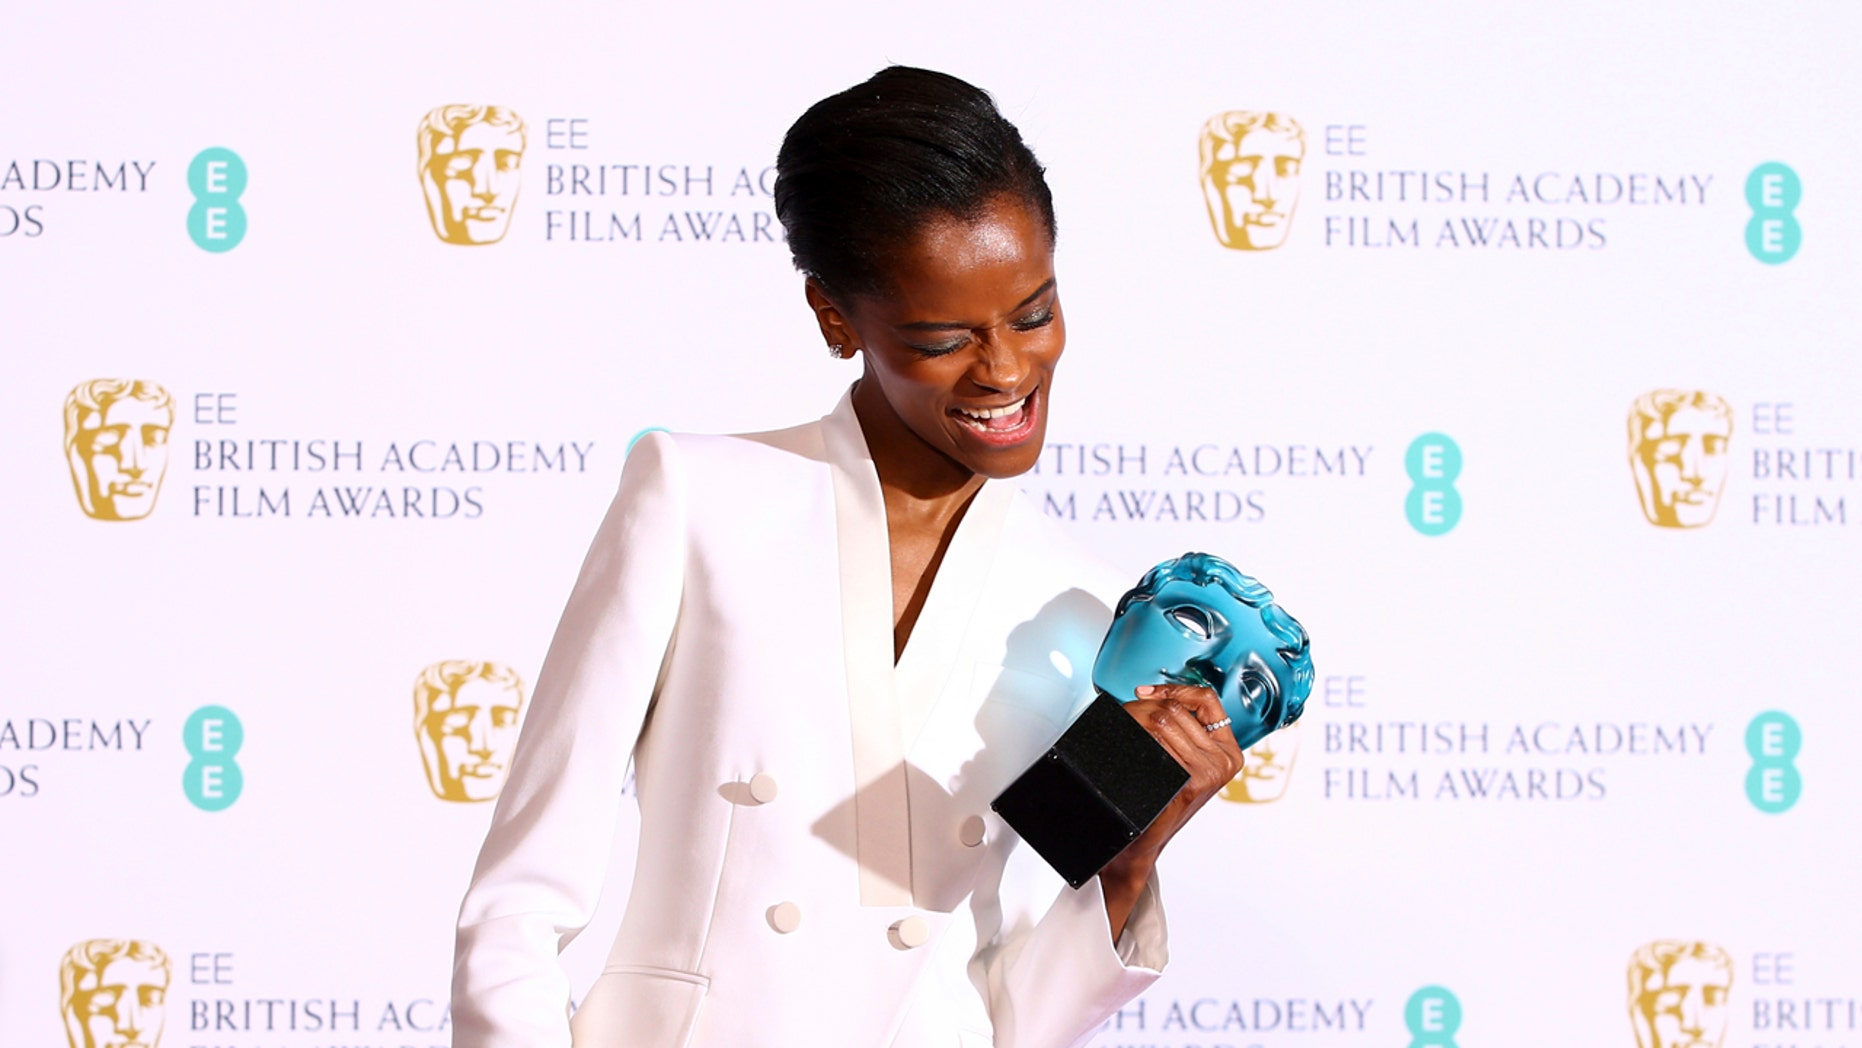 Actress Letitia Wright poses for photographers backstage with her Rising Star award at the BAFTA awards in London, Sunday, Feb. 10, 2019. (Photo by Joel C Ryan/Invision/AP)